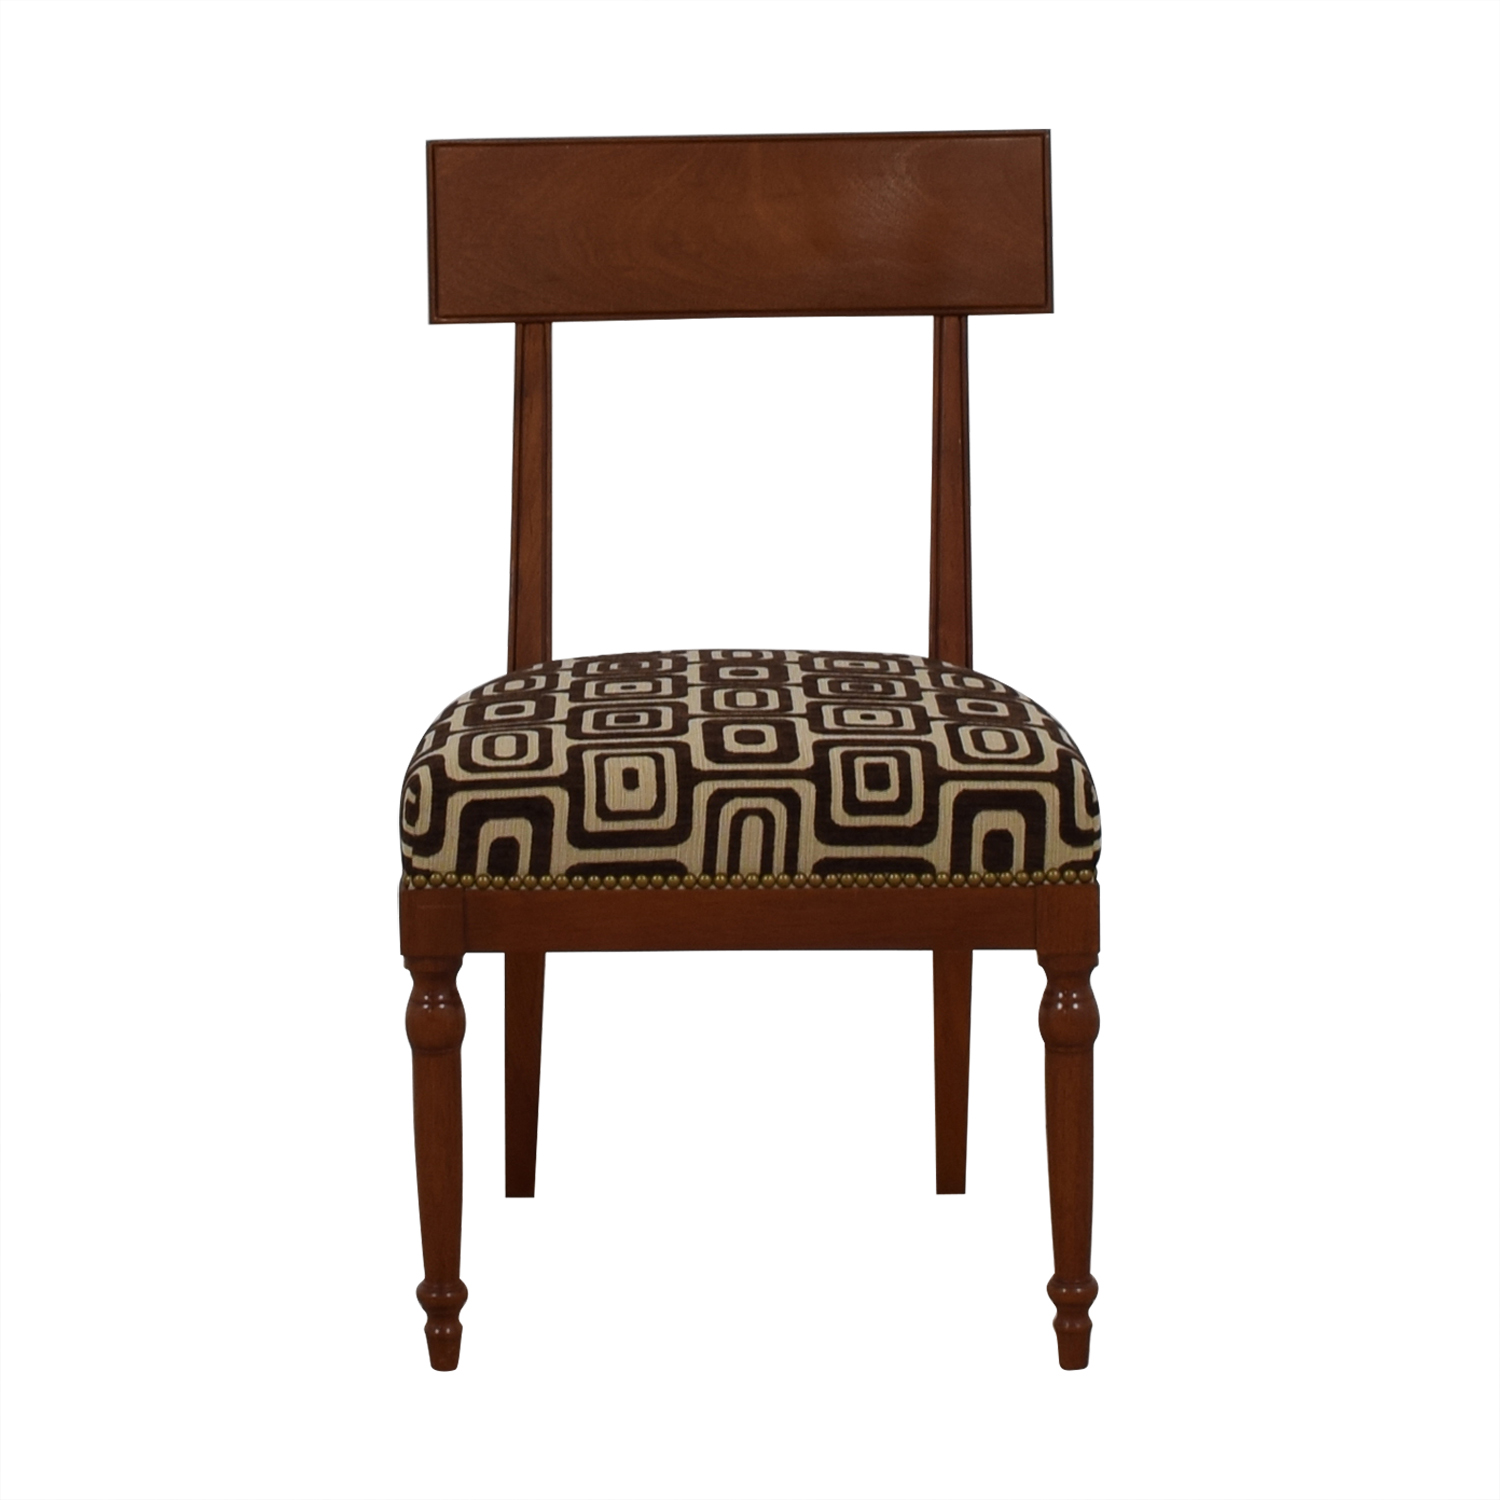 Furniture Masters Furniture Masters Brown Accent Chair dimensions